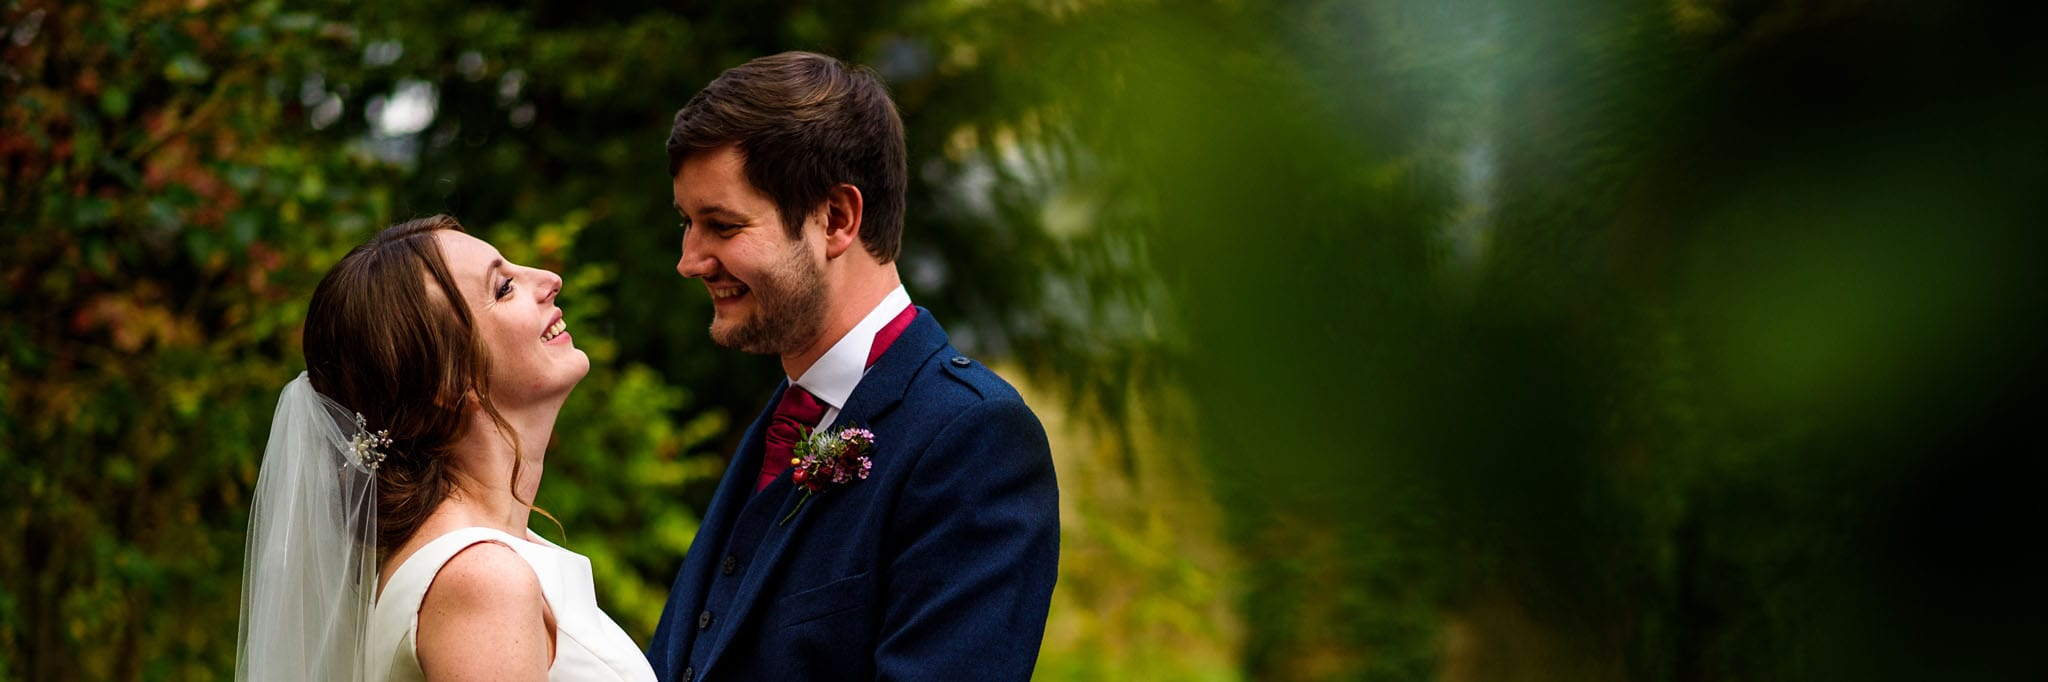 portrait of the bride and groom surrounded by autumnal gardens